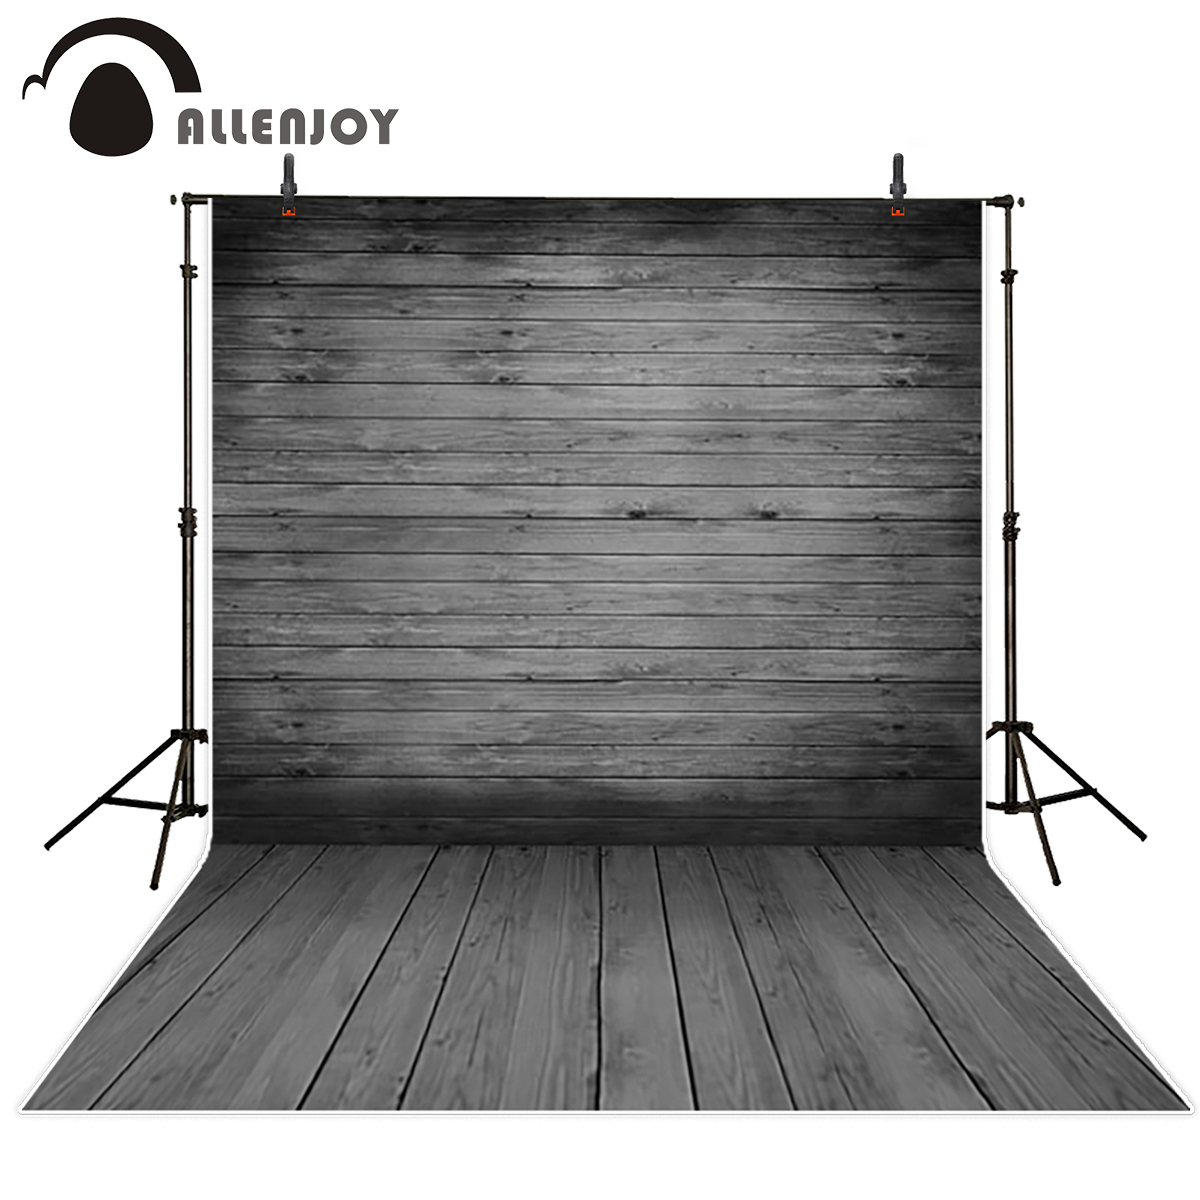 Allenjoy gray wood wall floor photography background plank board newborn baby shower custom backdrop photo studio photocall photography background baby shower step and repeat allenjoy backdrop custom made any size any style